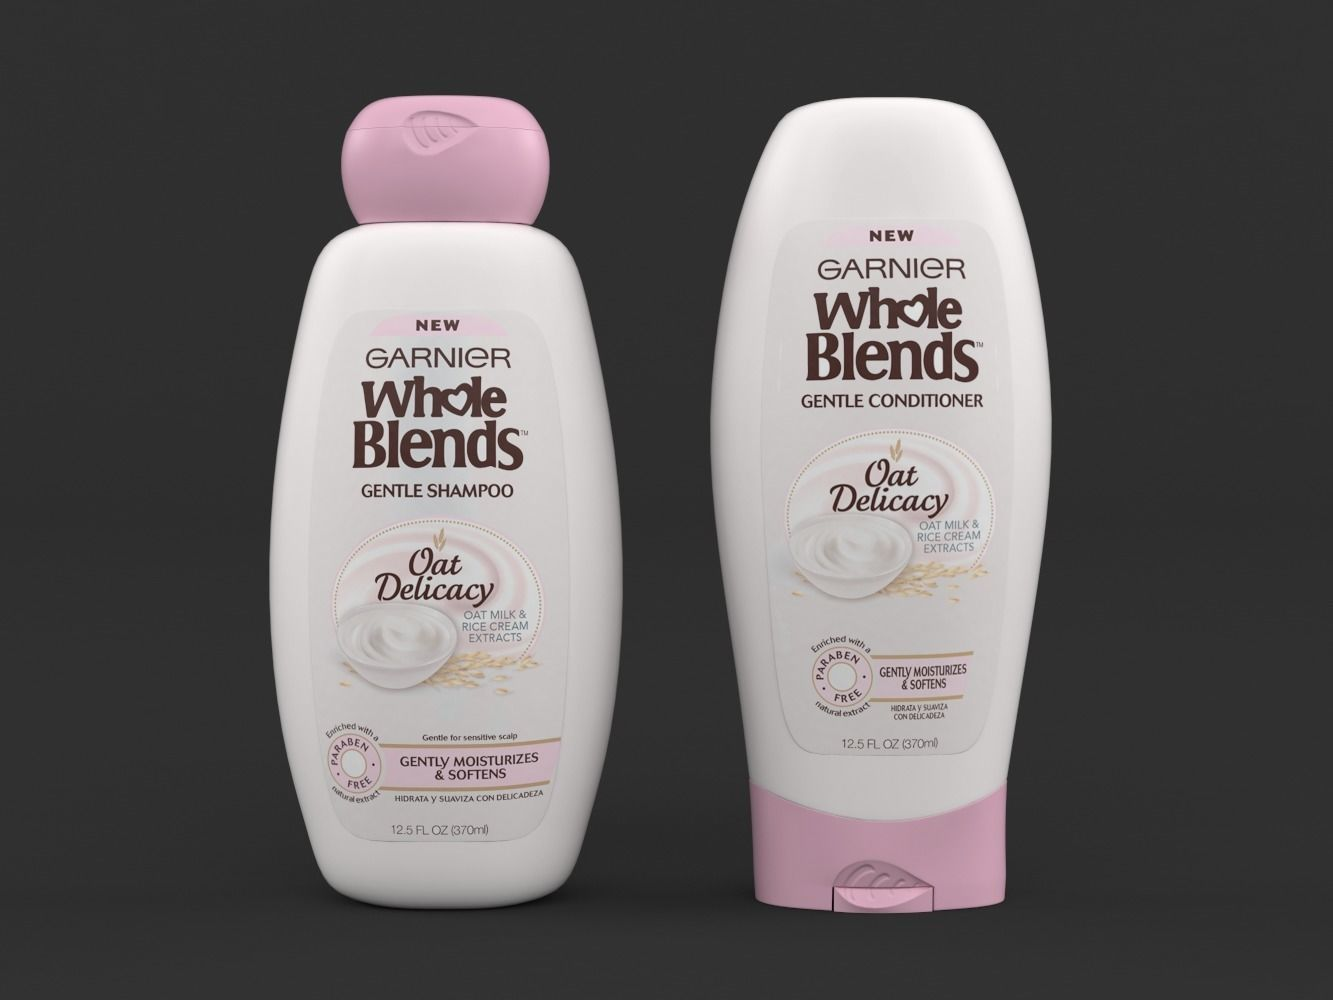 Garnier Whole Blends Oat Delicacy Gentle Shampoo and Conditioner